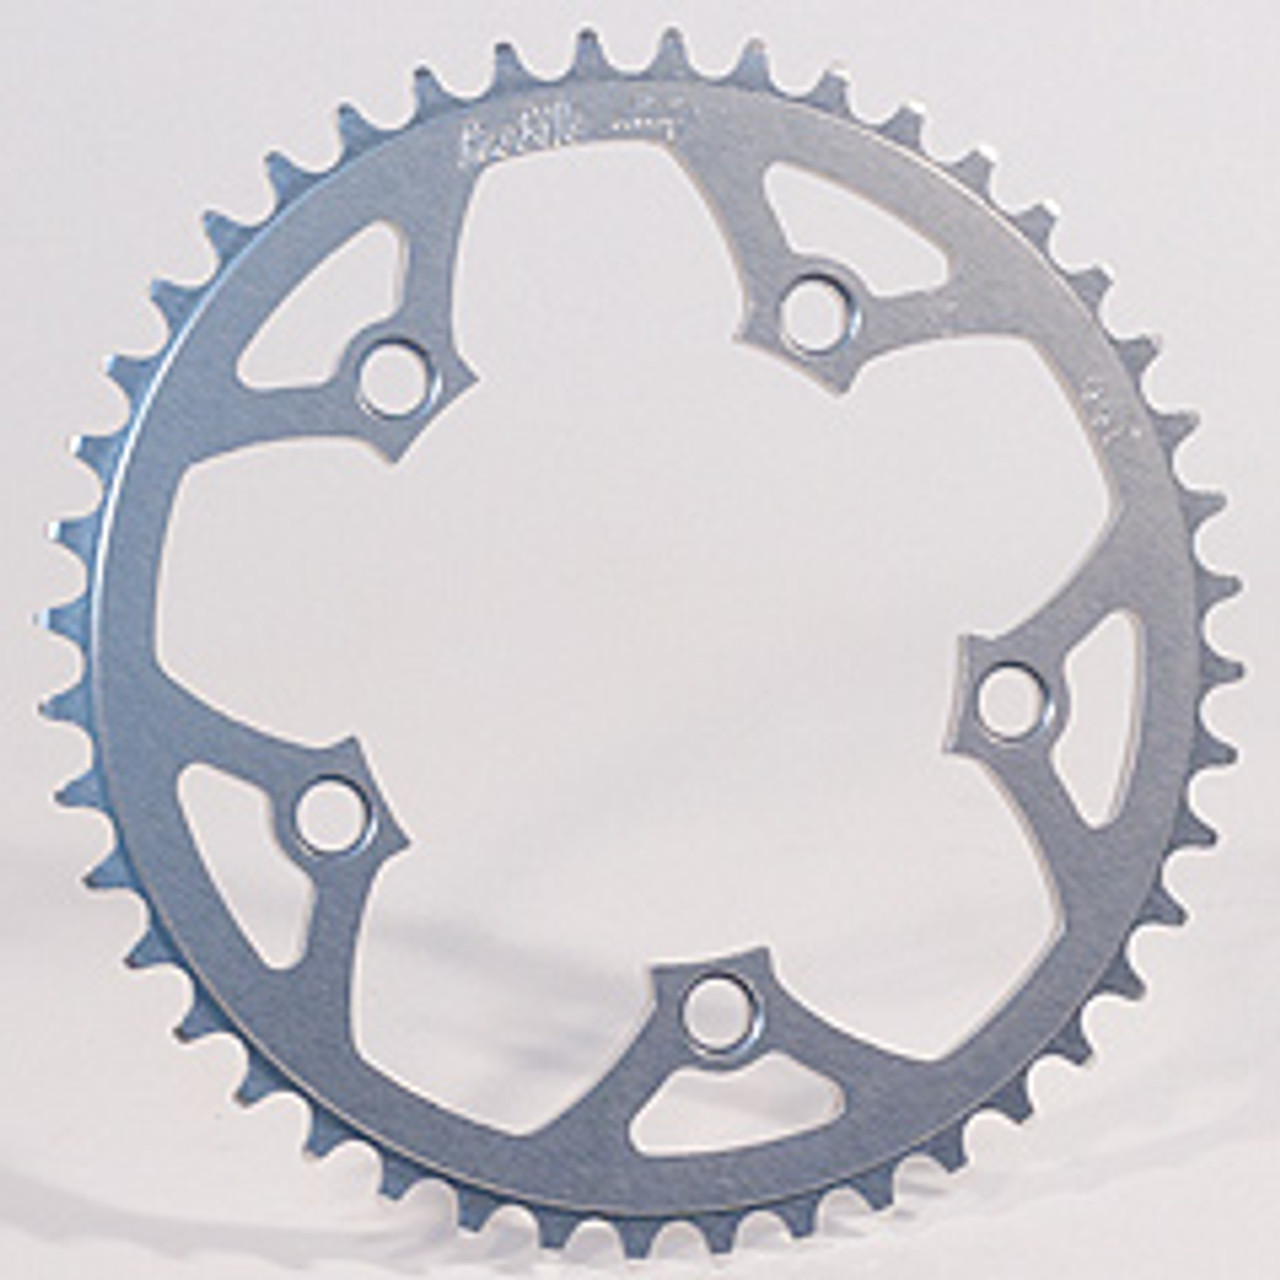 Insight 5-Bolt BMX Chainring 110mm BCD 39T SILVER